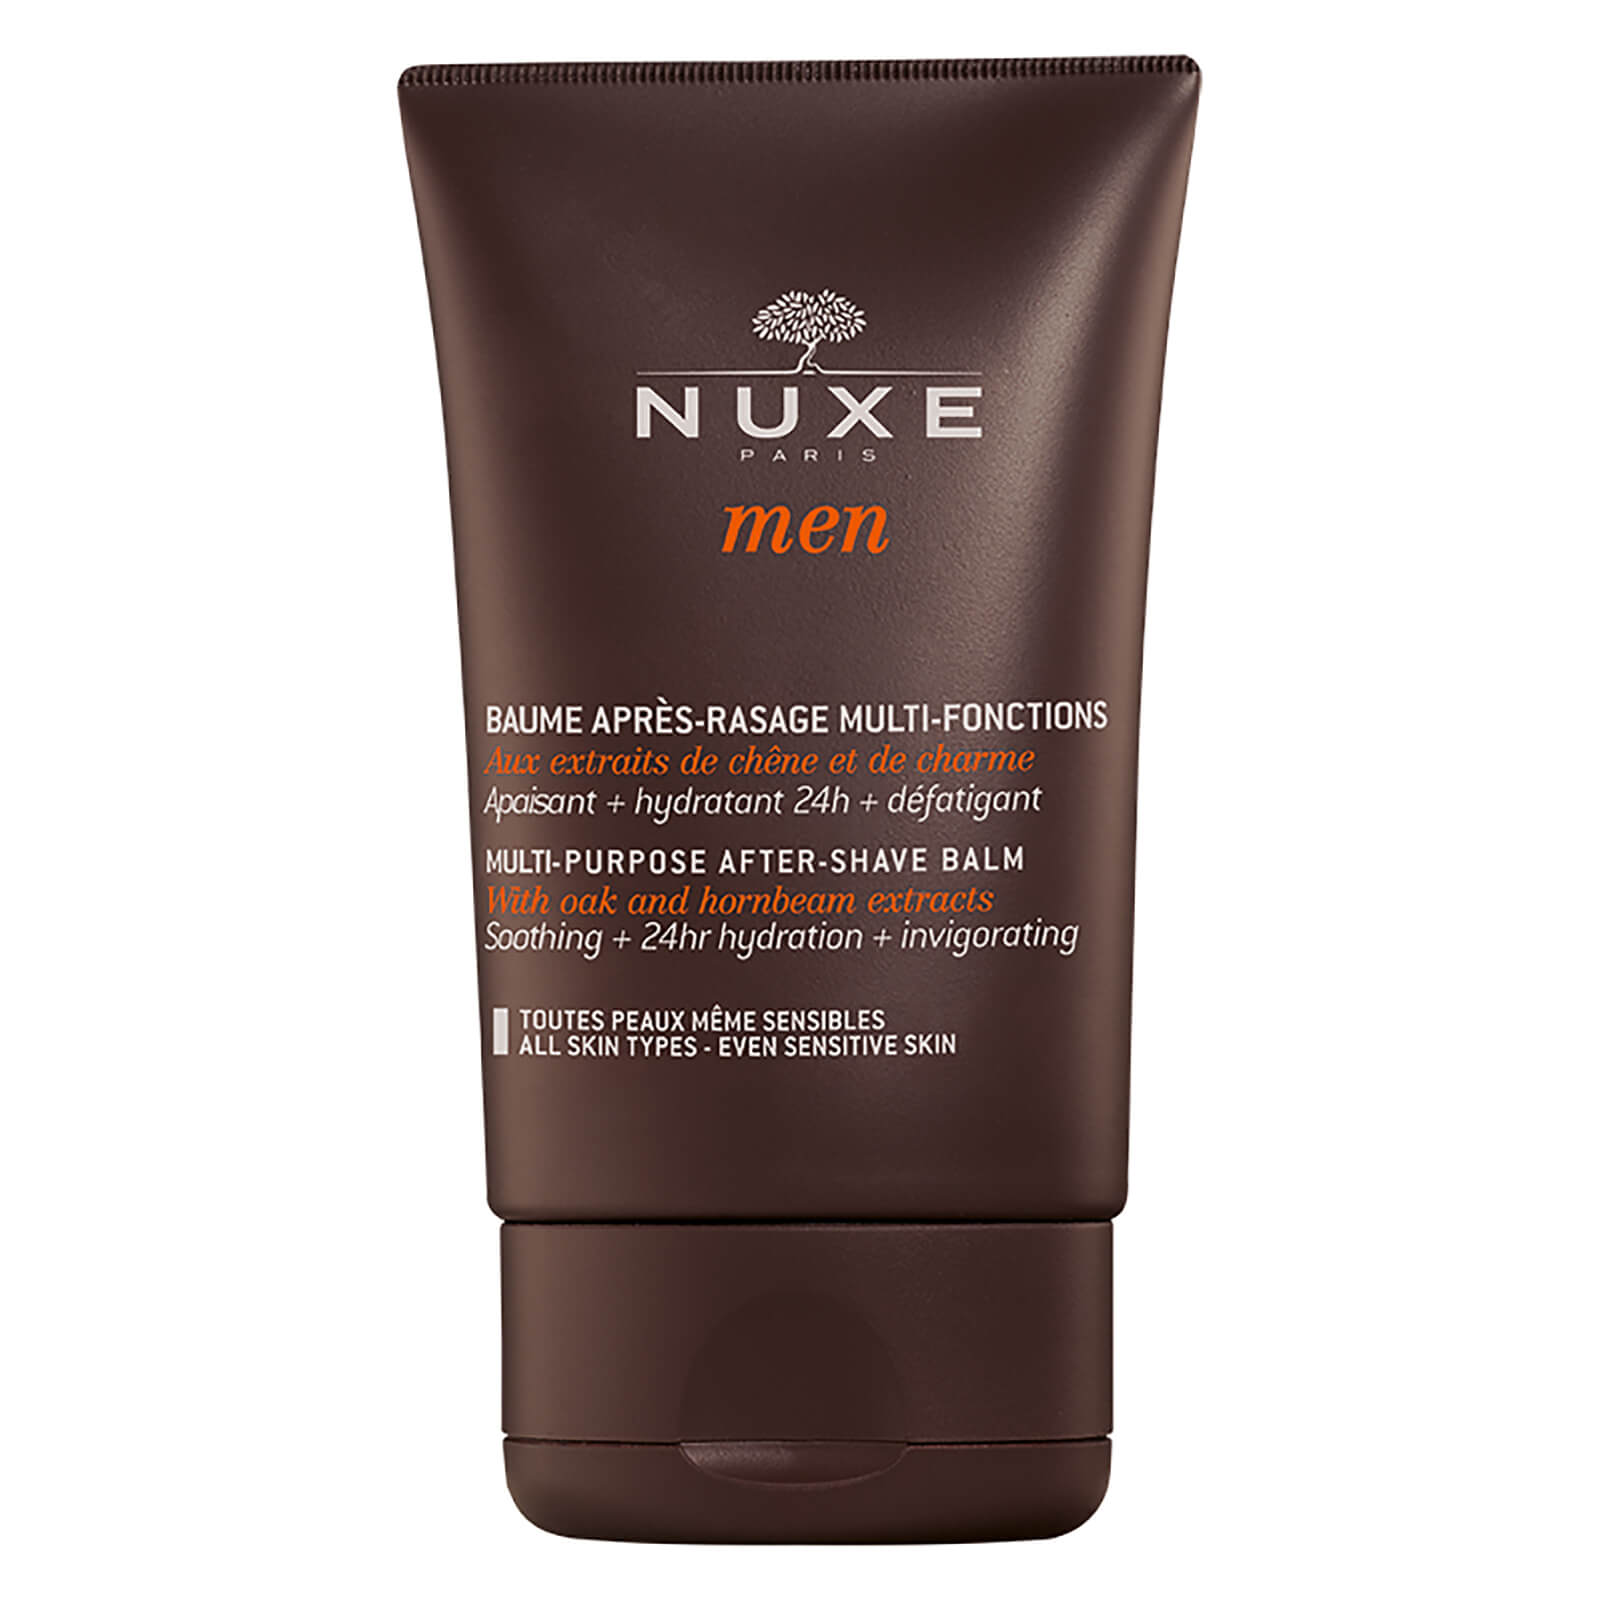 NUXE Men Multi-Purpose After-Shave Balm (50ml)   Free Shipping    Lookfantastic 3d0f557f6d2